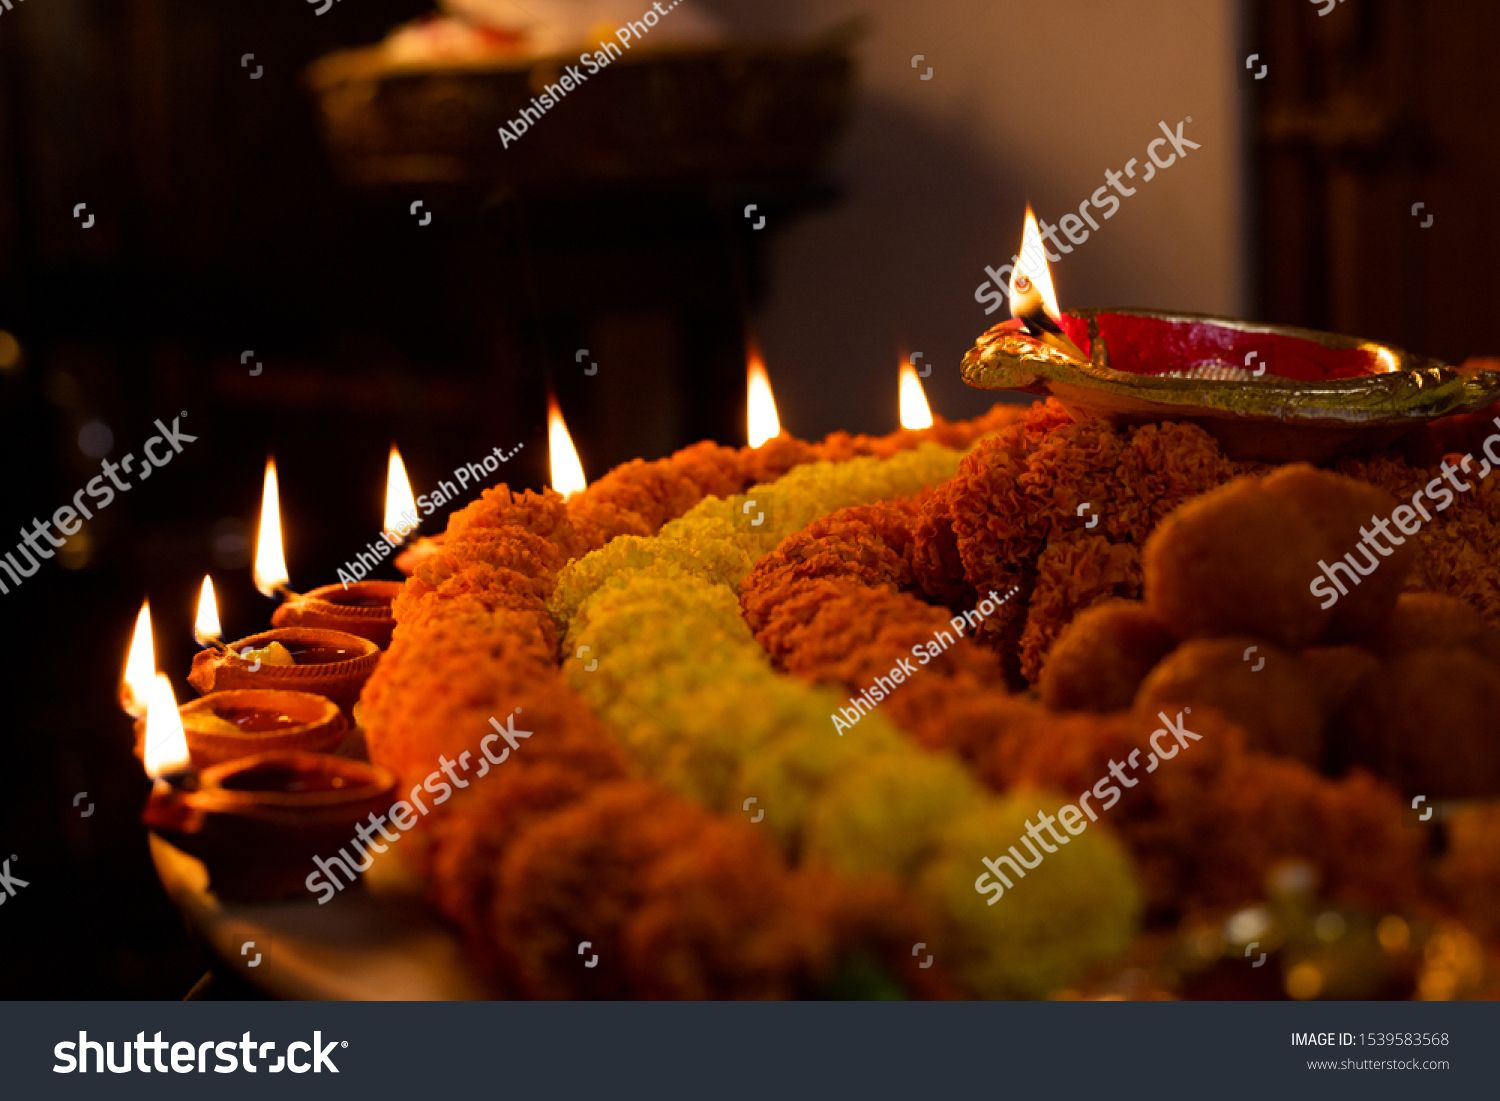 Happy Diwali Clay Diya Lamps Lit During Dipavali Hindu Festival Of Lights Celebration Colorful Tradition Diya Lamp Festival Lights Hindu Festival Of Lights